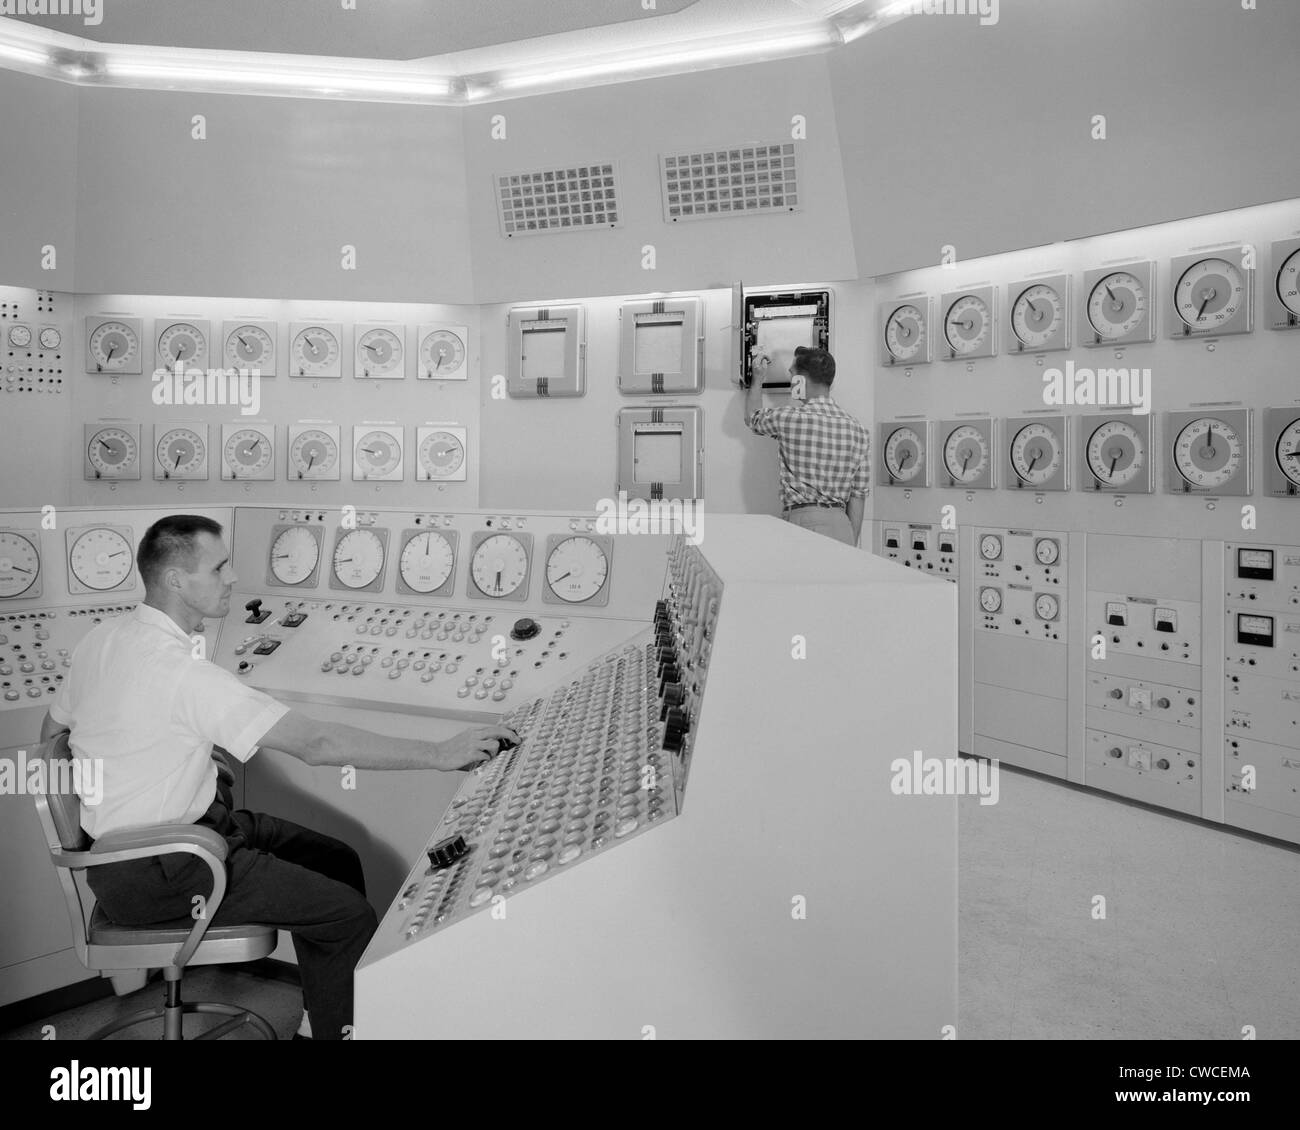 Technicians in a nuclear reactor control room at NASA's Plum Brook Station in Sandusky, Ohio. 1959. - Stock Image